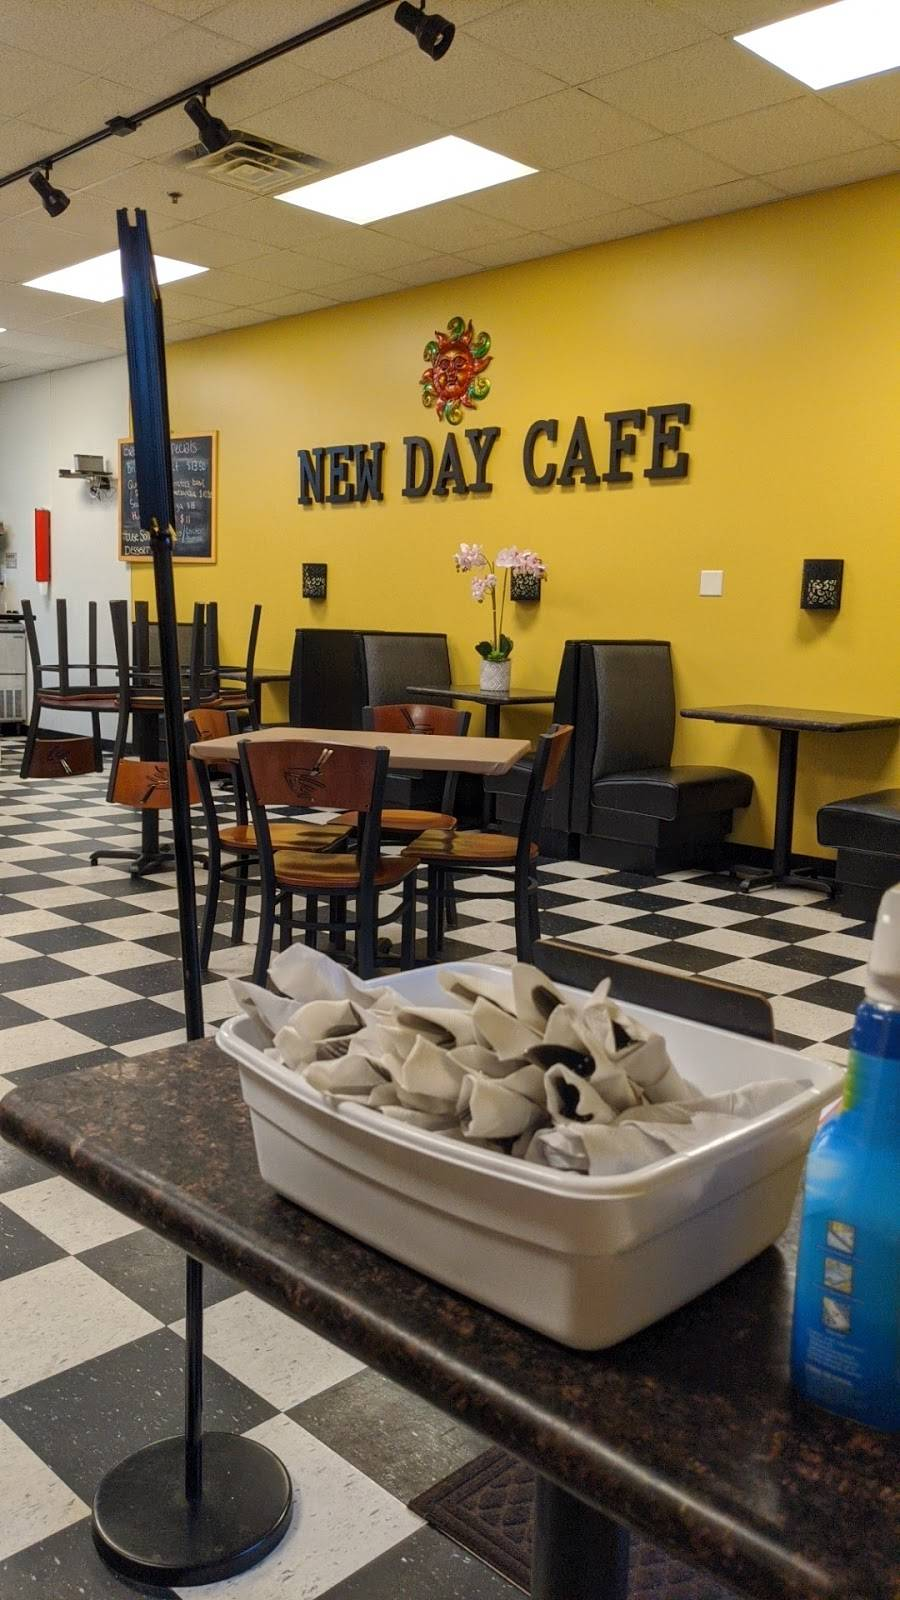 New Day Cafe | restaurant | 497 Olde Waterford Way STE 100, Leland, NC 28451, USA | 9107699036 OR +1 910-769-9036